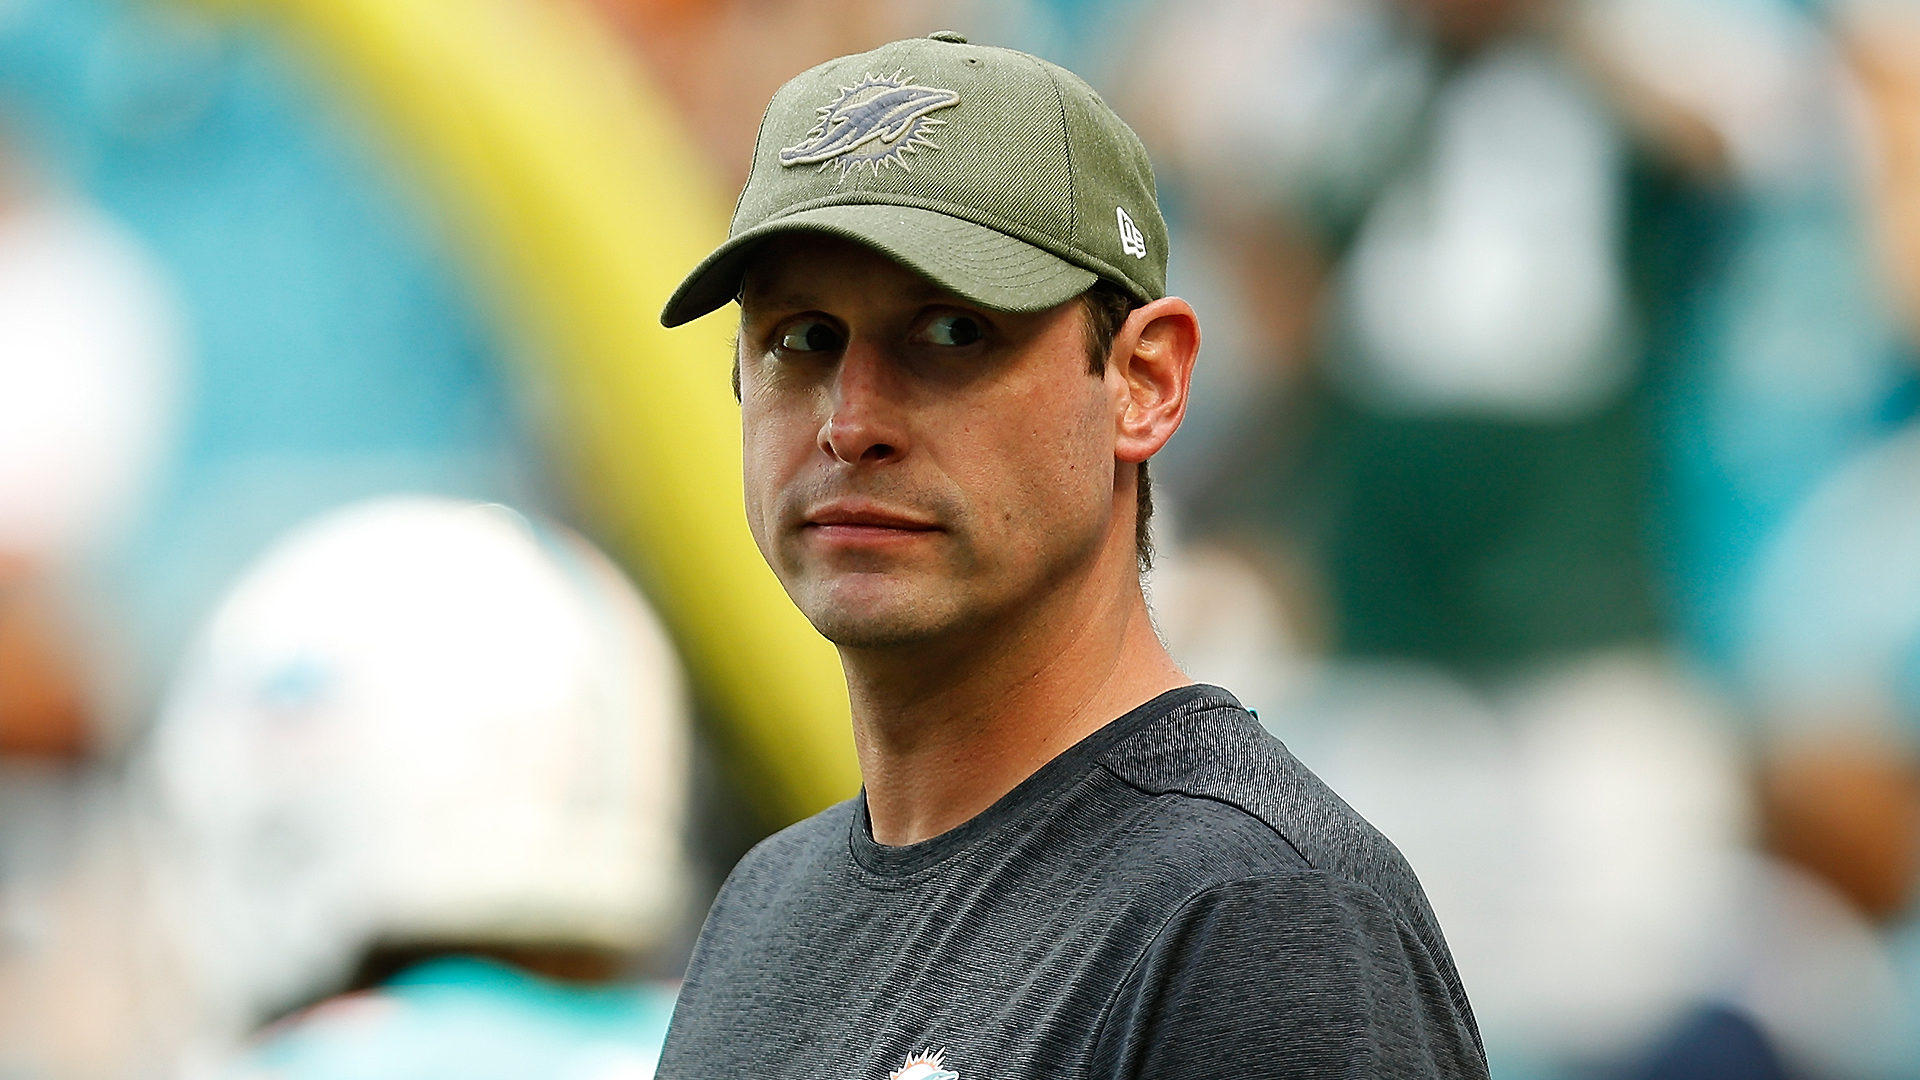 Adam Gase is already a meme after just one press conference with Jets